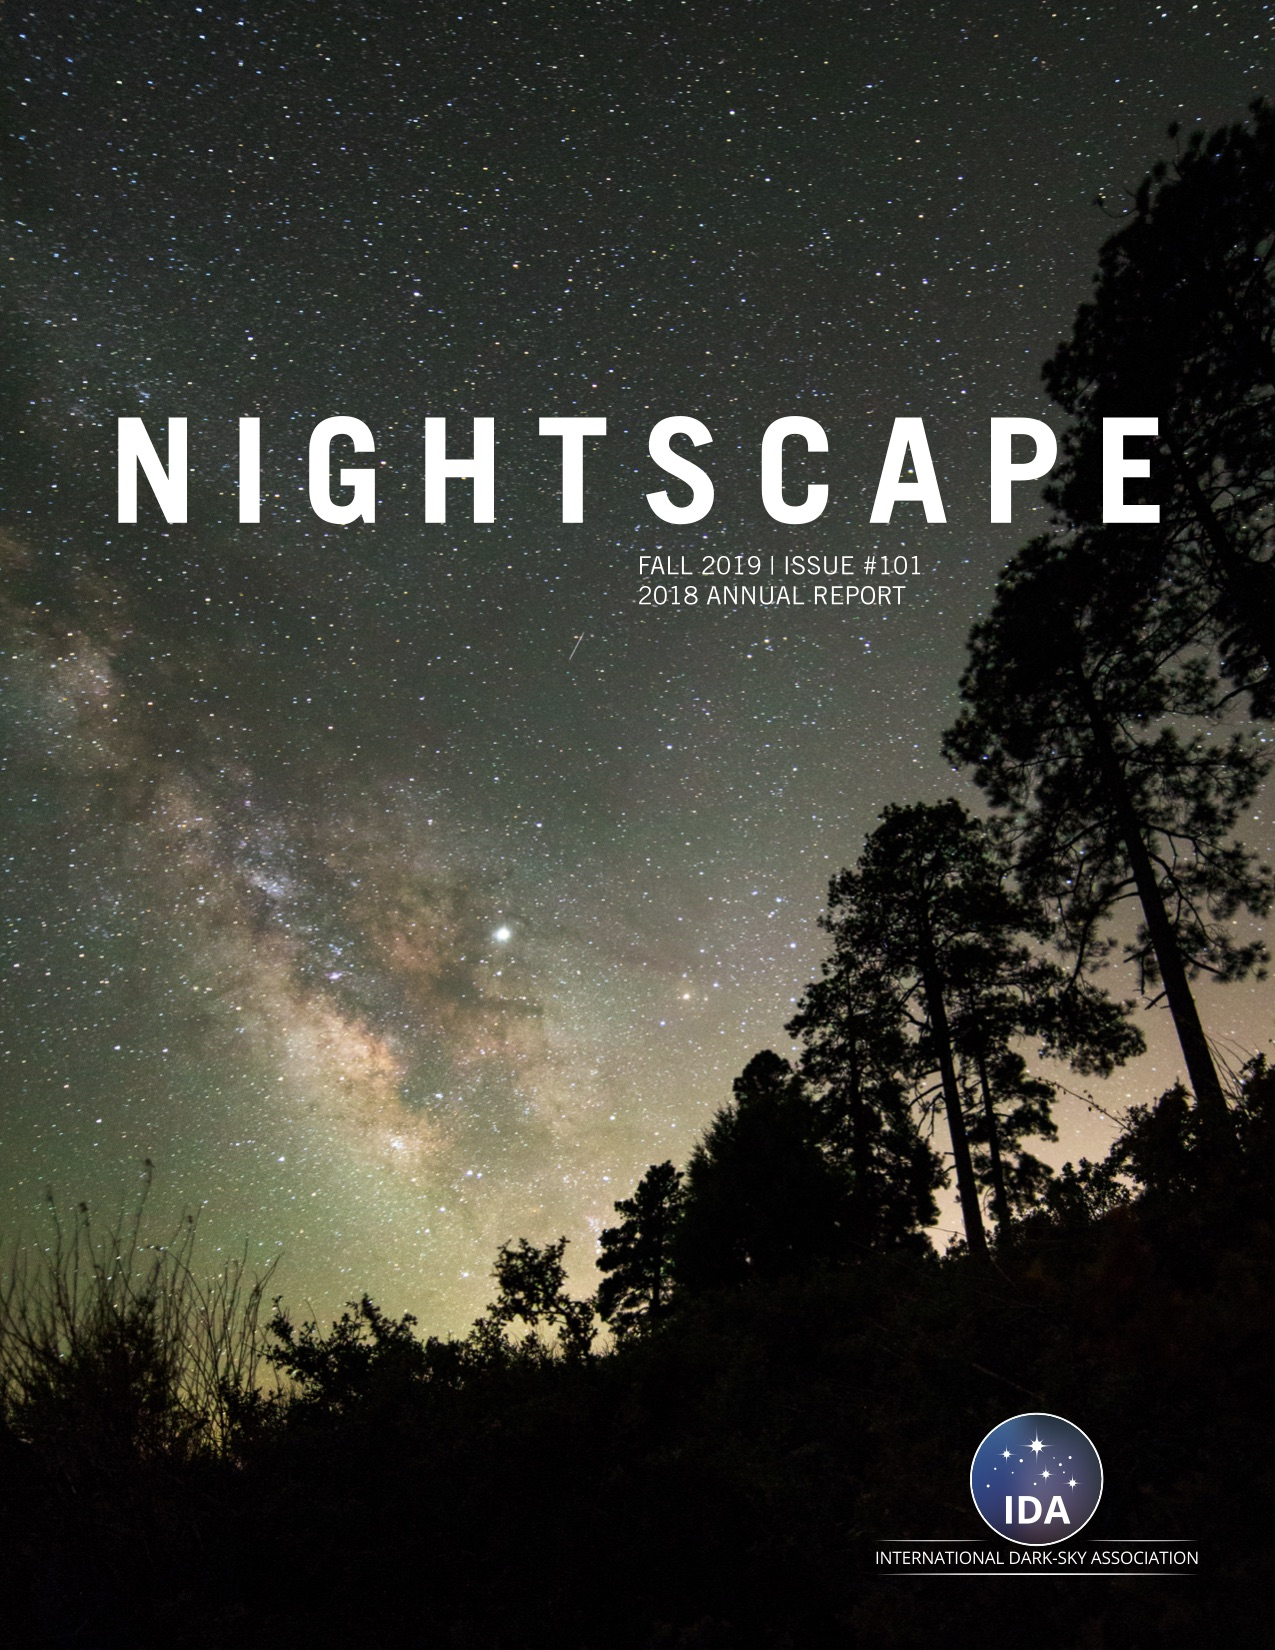 NIGHTSCAPE: IDA 2018 Annual Report Published Image